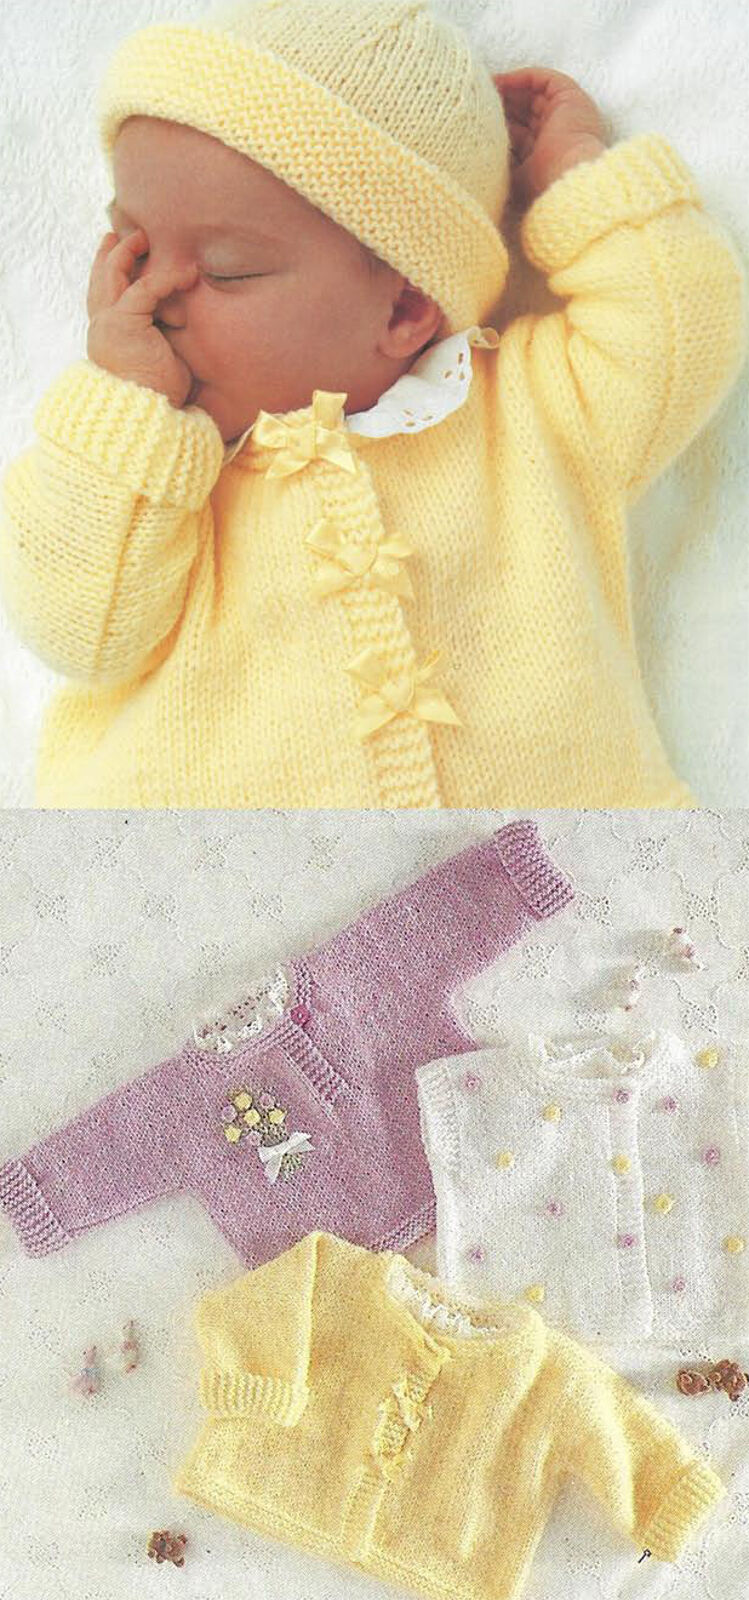 Knitting Pattern Baby Bolero Cardigan : Quick Easy Knit Baby Jackets Sweater Cardigan Bolero Knitting Pattern (336)  ...